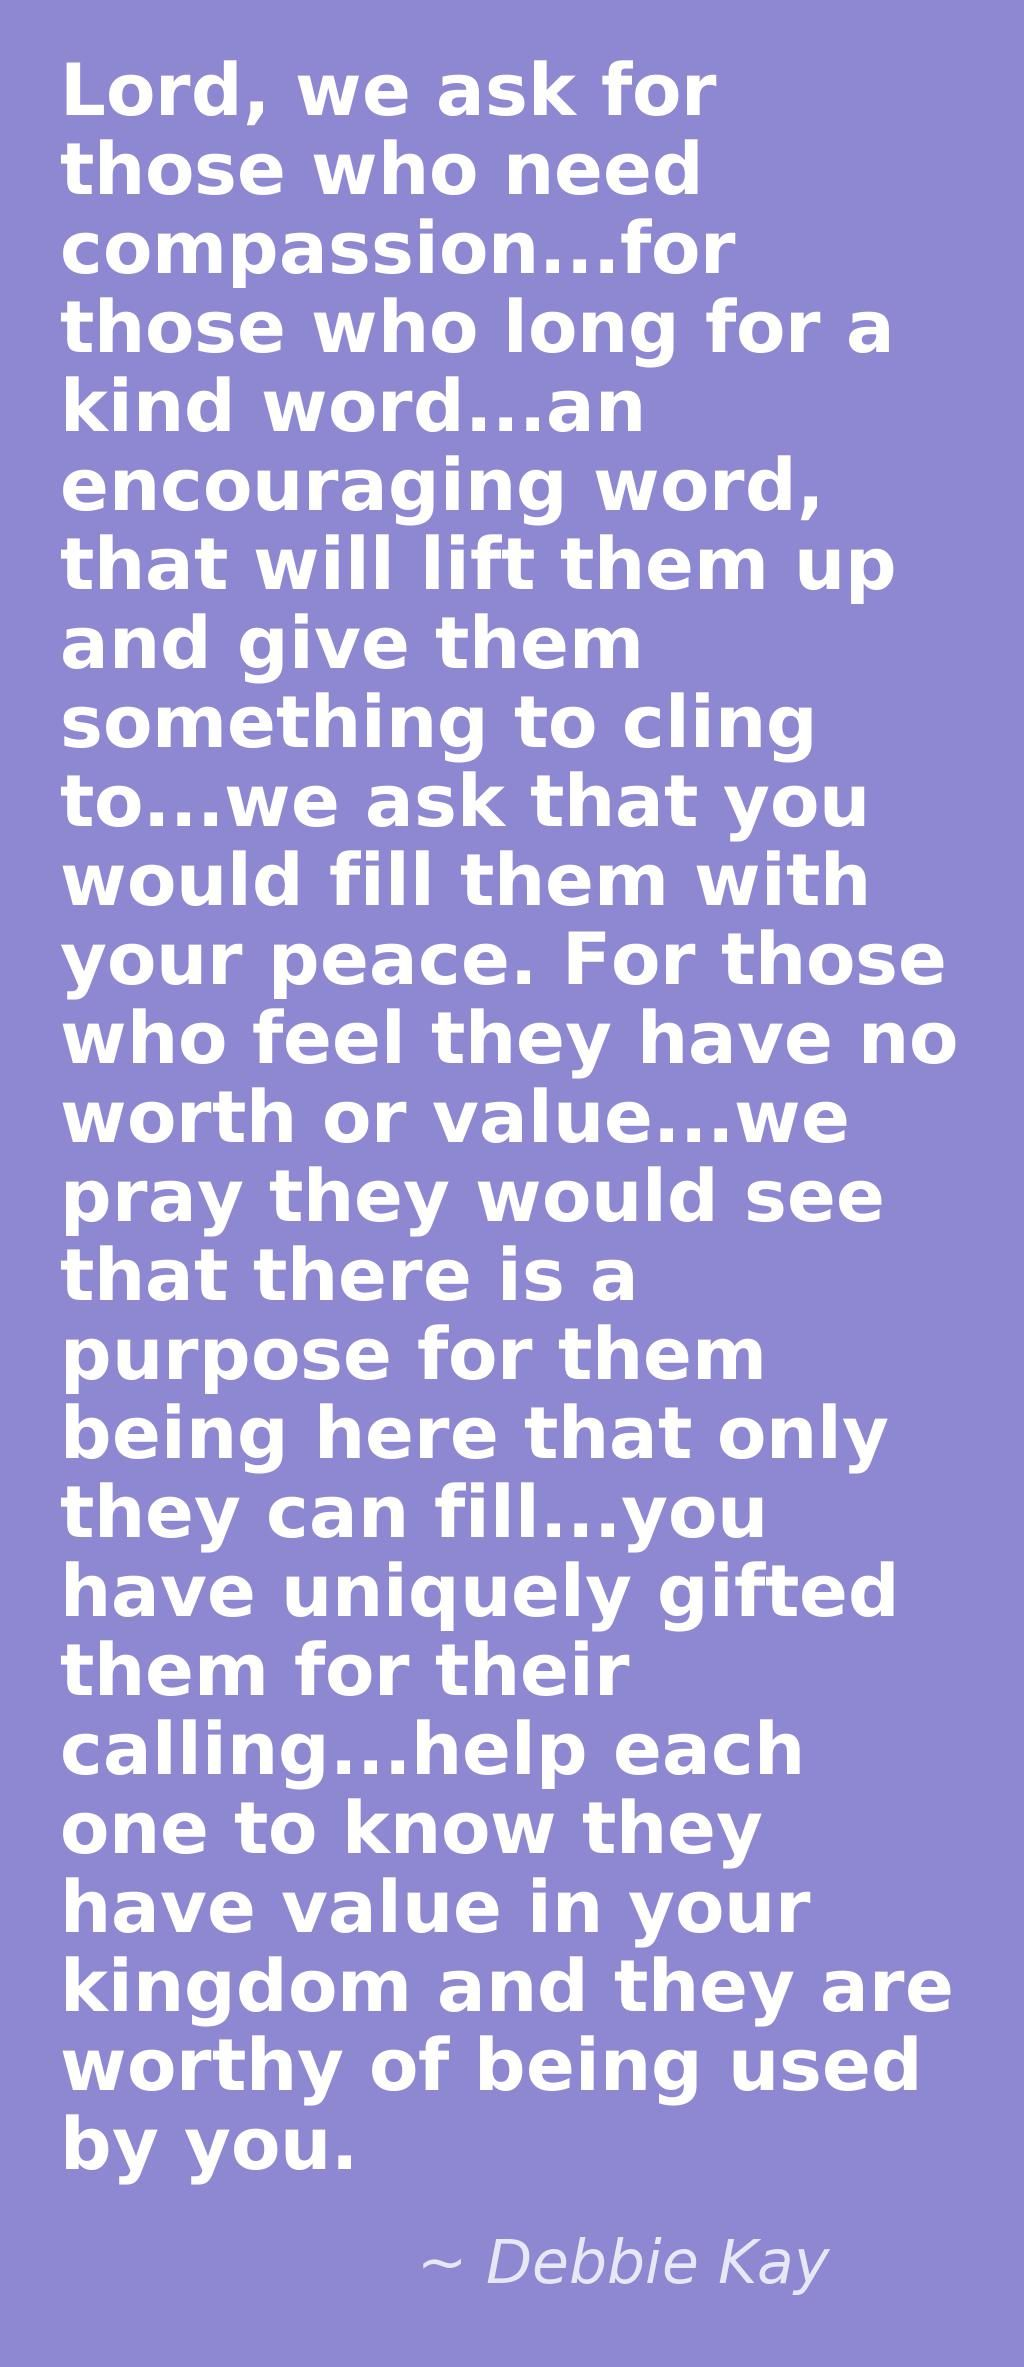 Today S Prayer 4 3 13 Bullying Quotes Stop Bullying Quotes Image Quotes